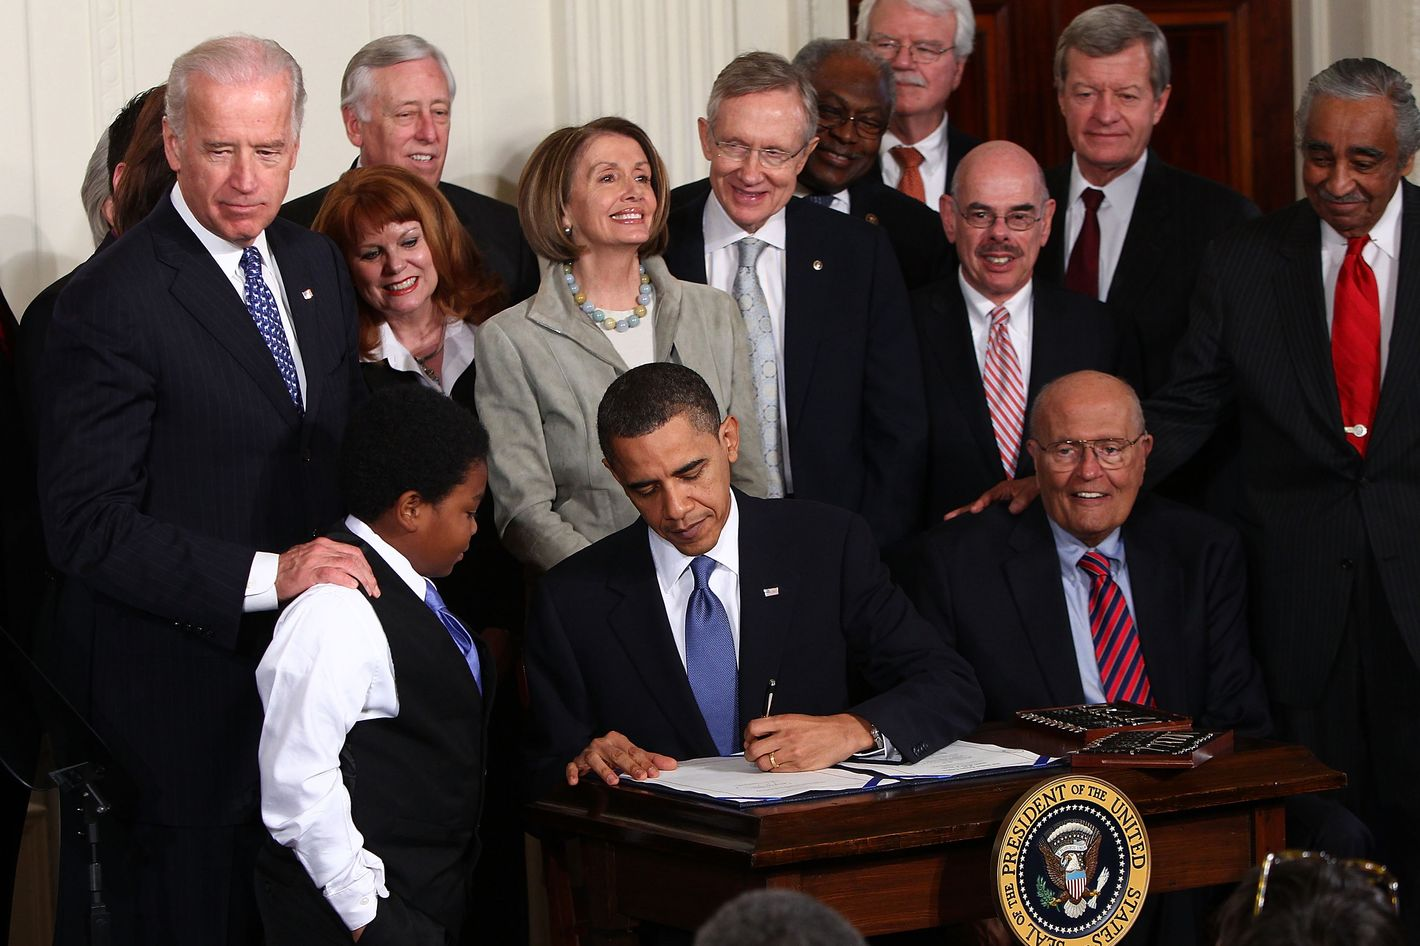 WASHINGTON - MARCH 23:  U.S. President Barack Obama signs the Affordable Health Care for America Act during a ceremony with fellow Democrats in the East Room of the White House March 23, 2010 in Washington, DC. The historic bill was passed by the House of Representatives Sunday after a 14-month-long political battle that left the legislation without a single Republican vote.  (Photo by Win McNamee/Getty Images)